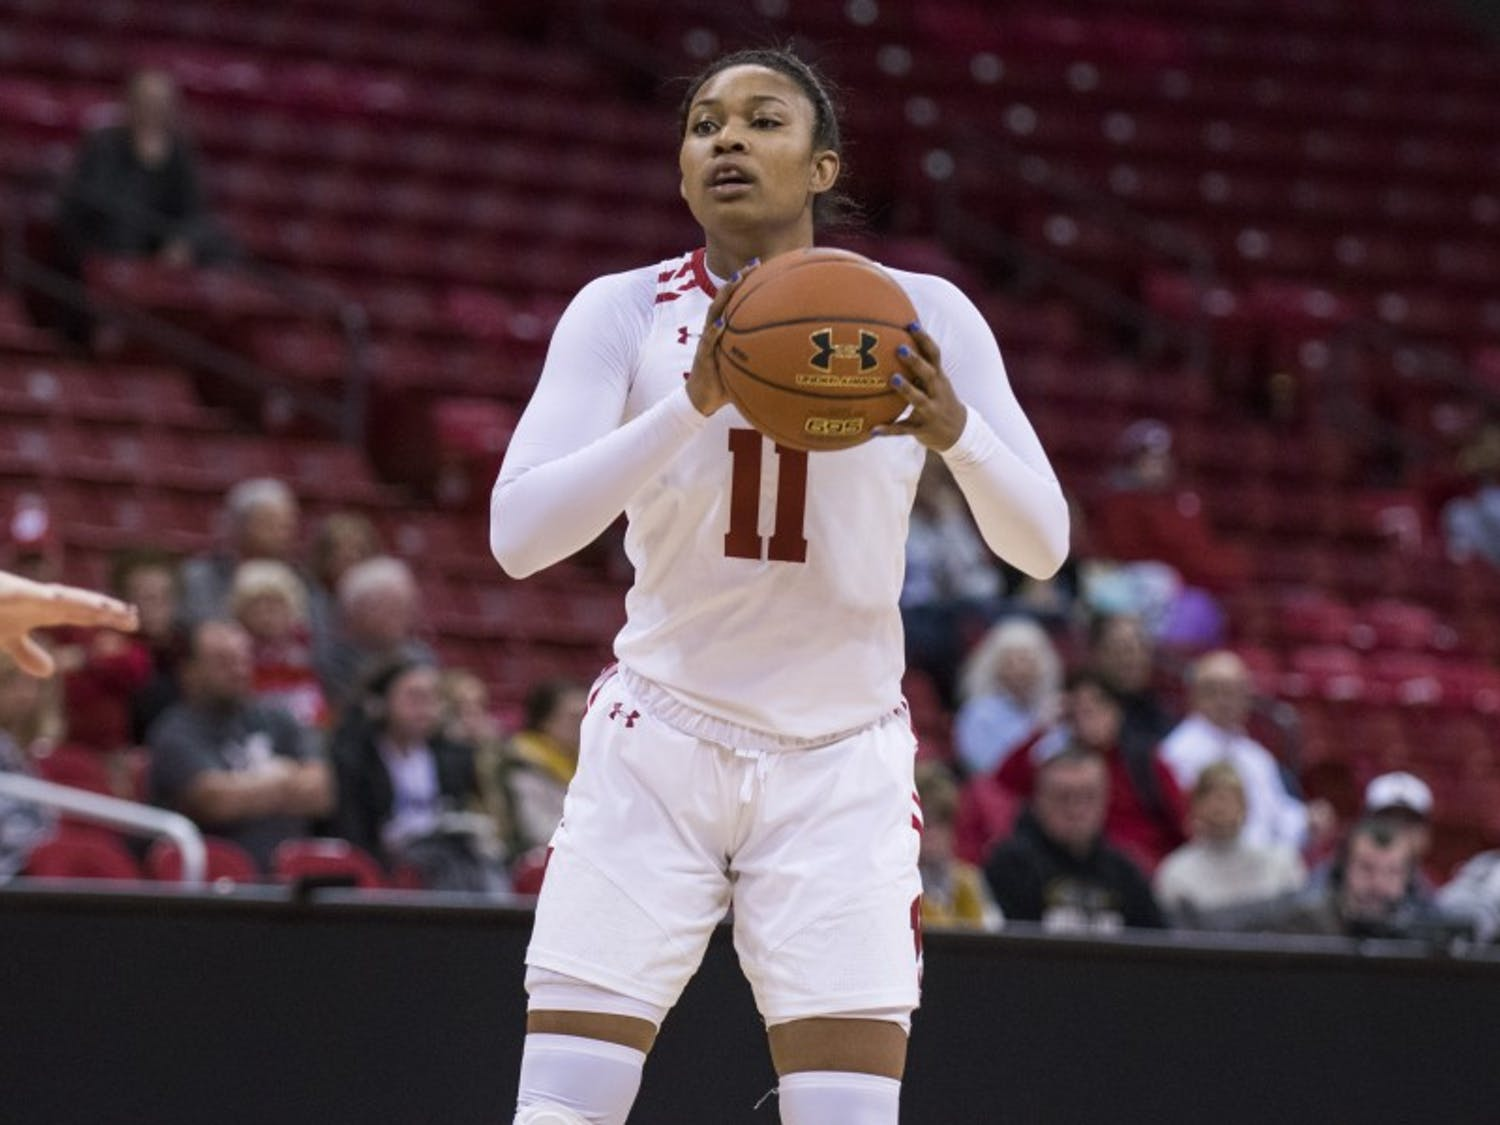 Senior forward Marsha Howard became the 26th Badger to reach 1000 points, but her ultimate goal is an NIT appearance for Wisconsin.